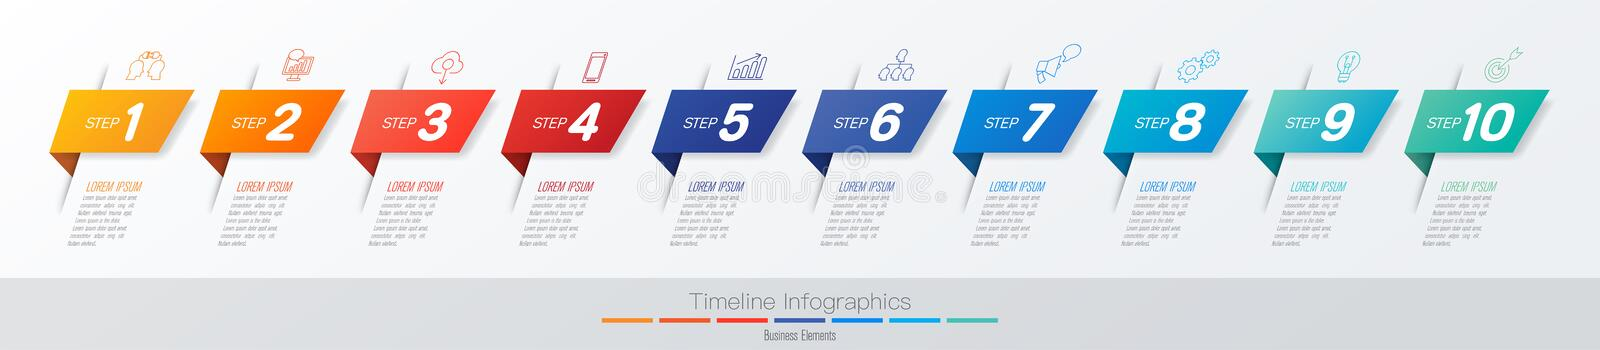 Timeline infographics design vector and marketing icons, Business concept with 10 options, steps or processes. stock illustration